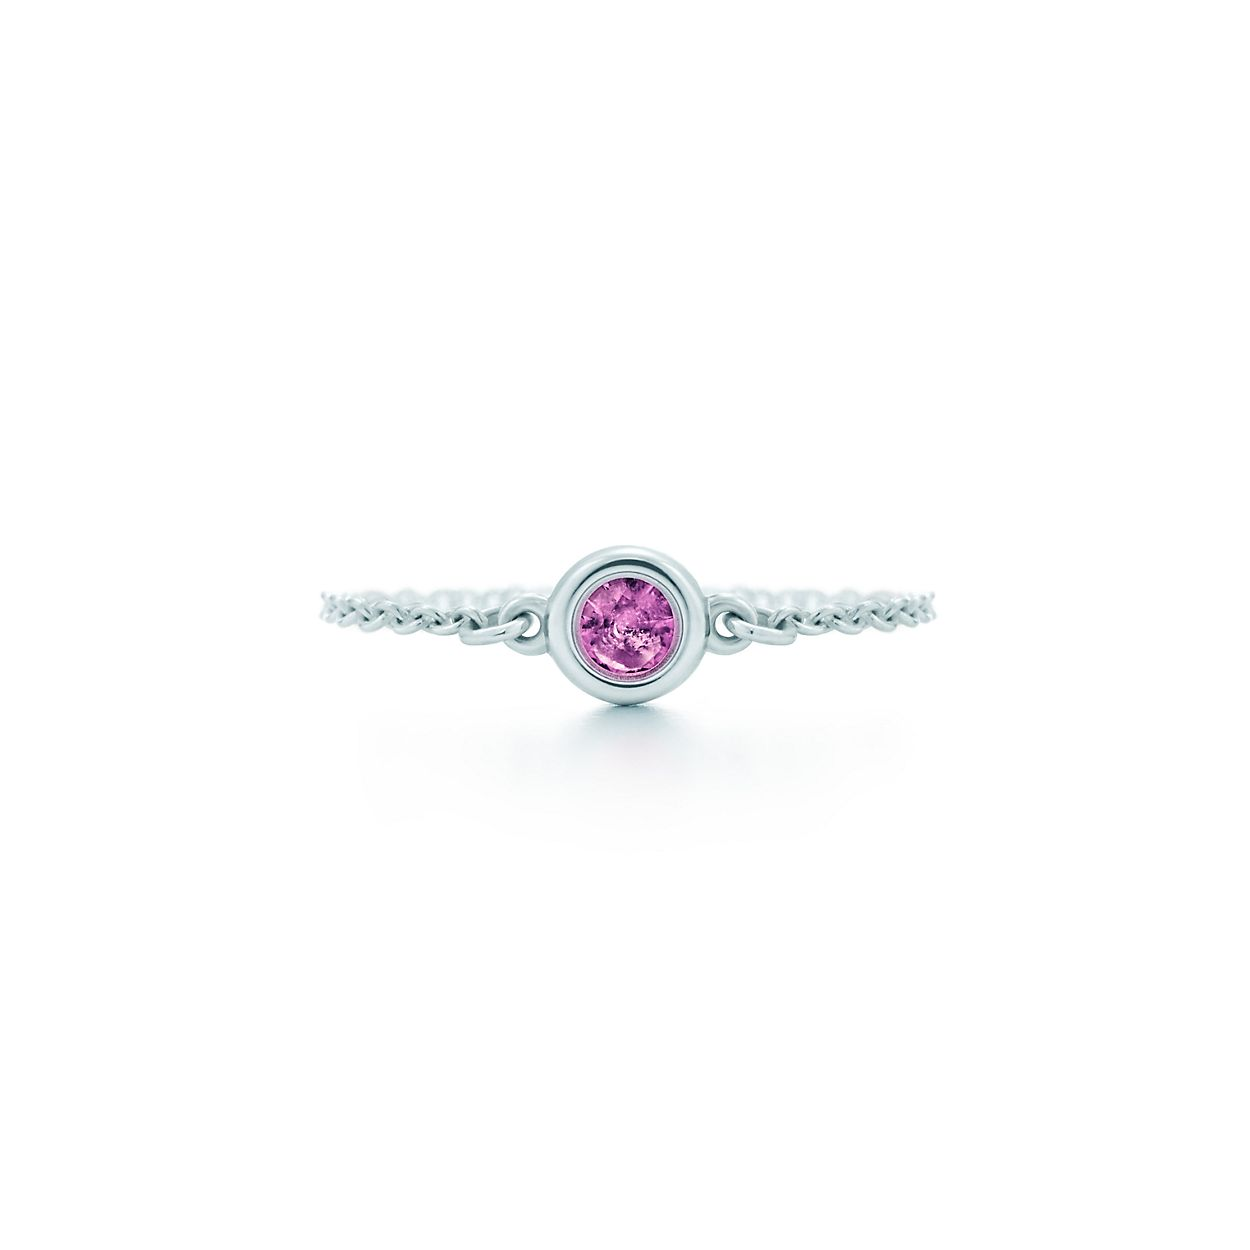 Elsa Peretti Color by the Yard earrings in sterling silver with pink sapphires Tiffany & Co. EyIPxHrr